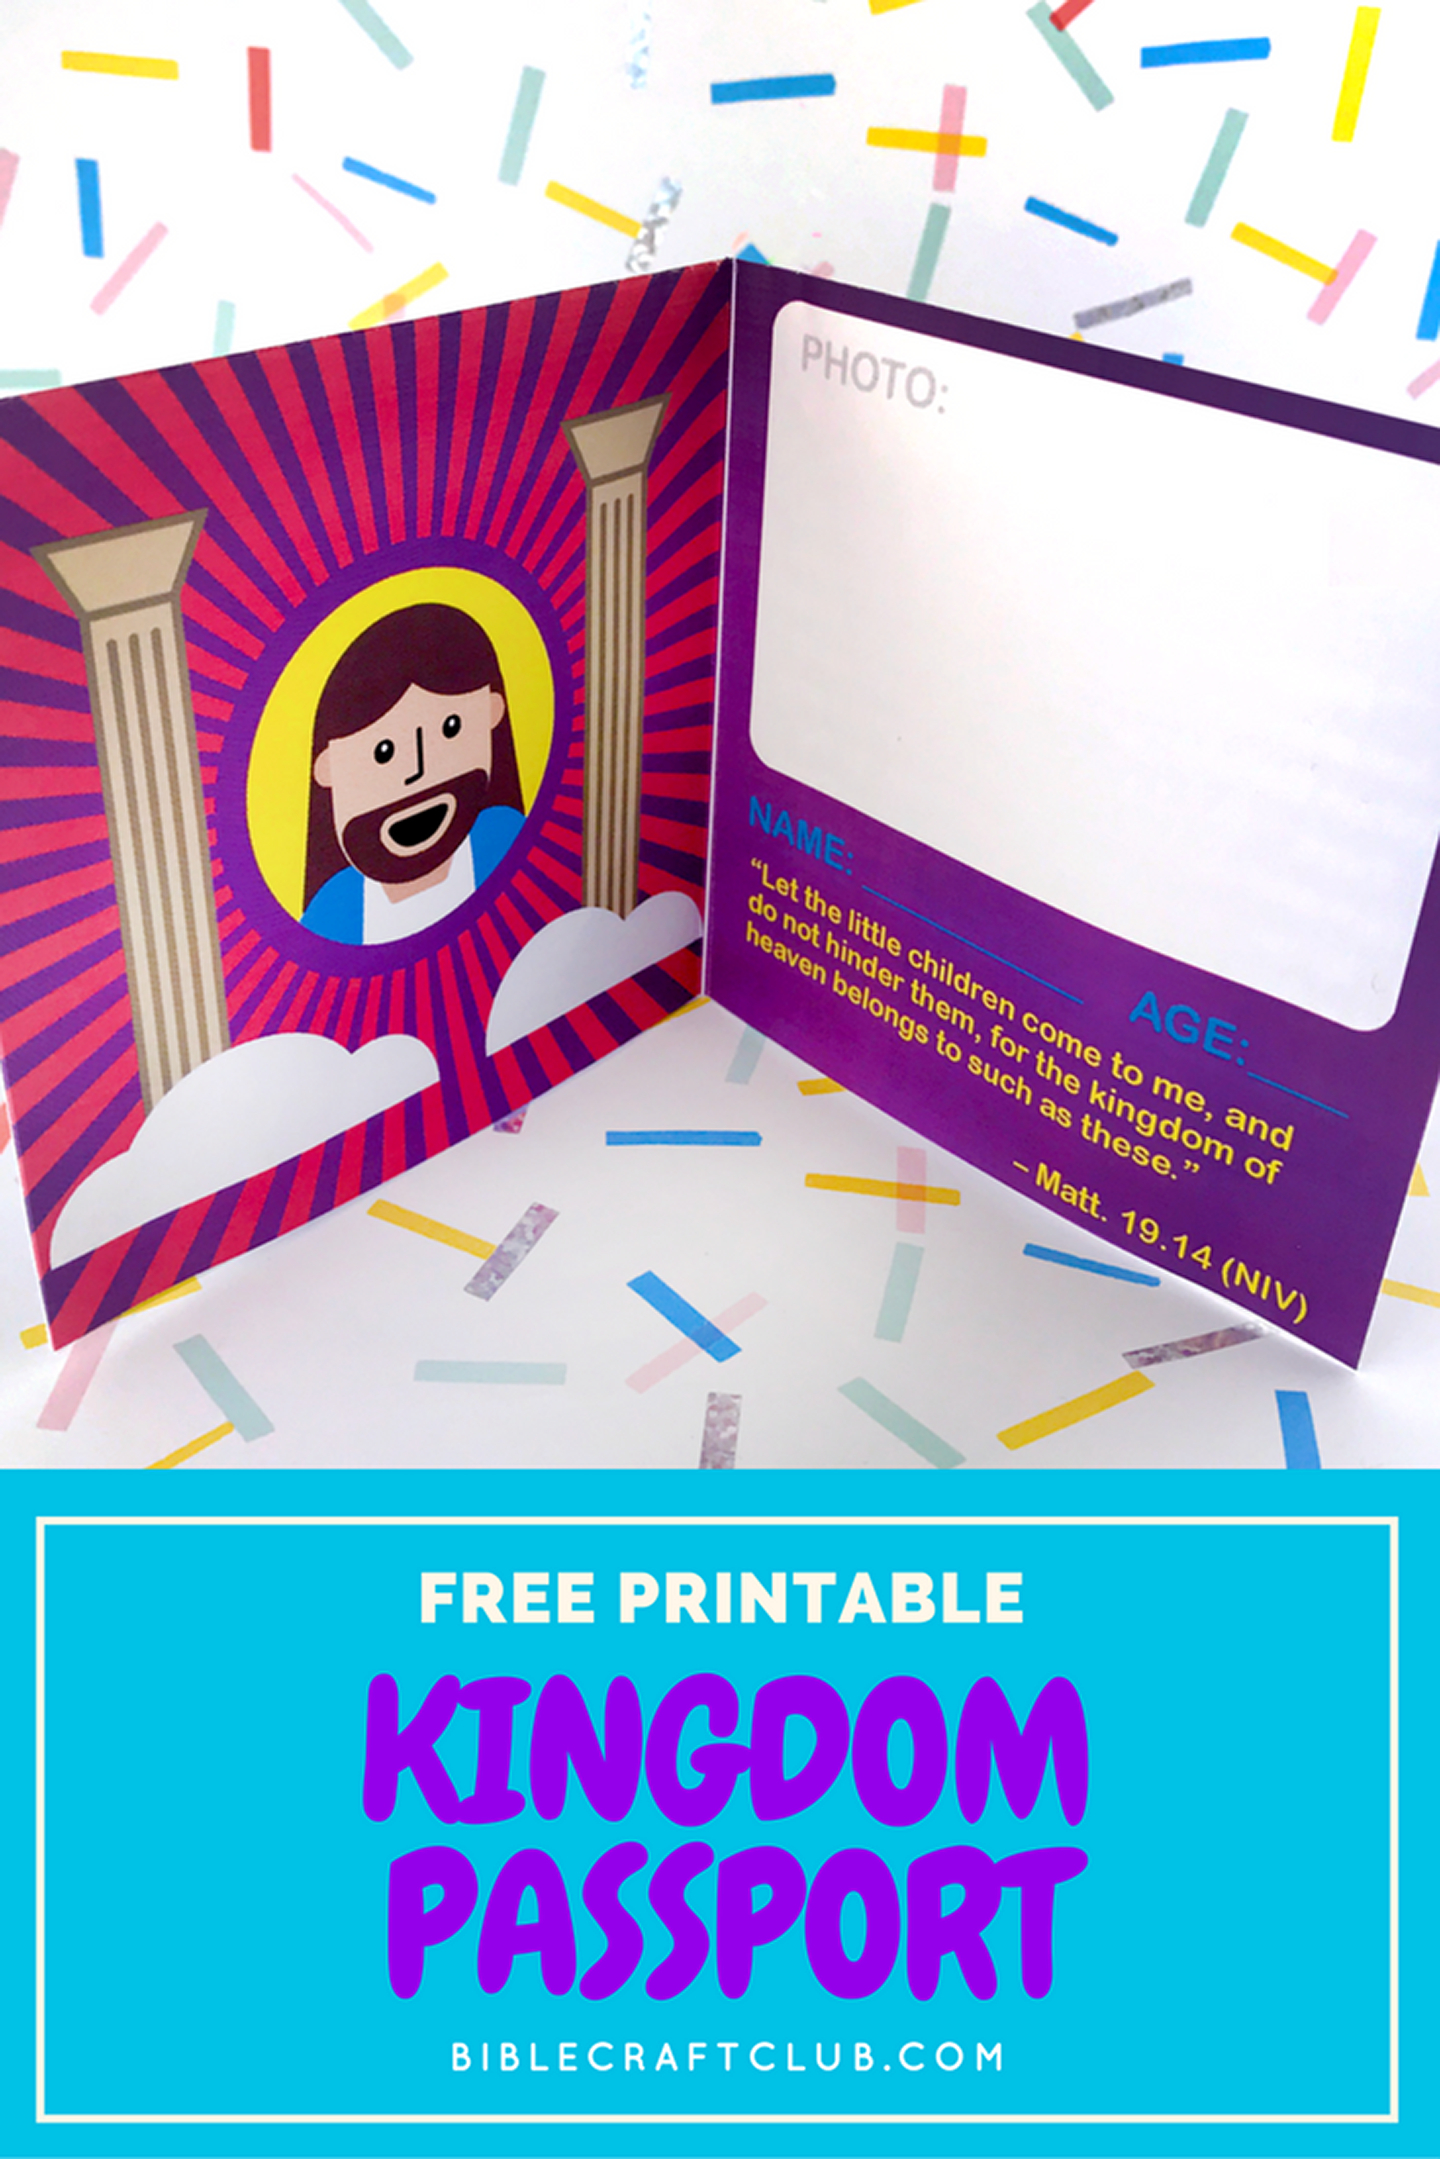 Kingdom Passport Craft | Biblecraftclub | Bible Crafts - Free Printable Bible Crafts For Preschoolers